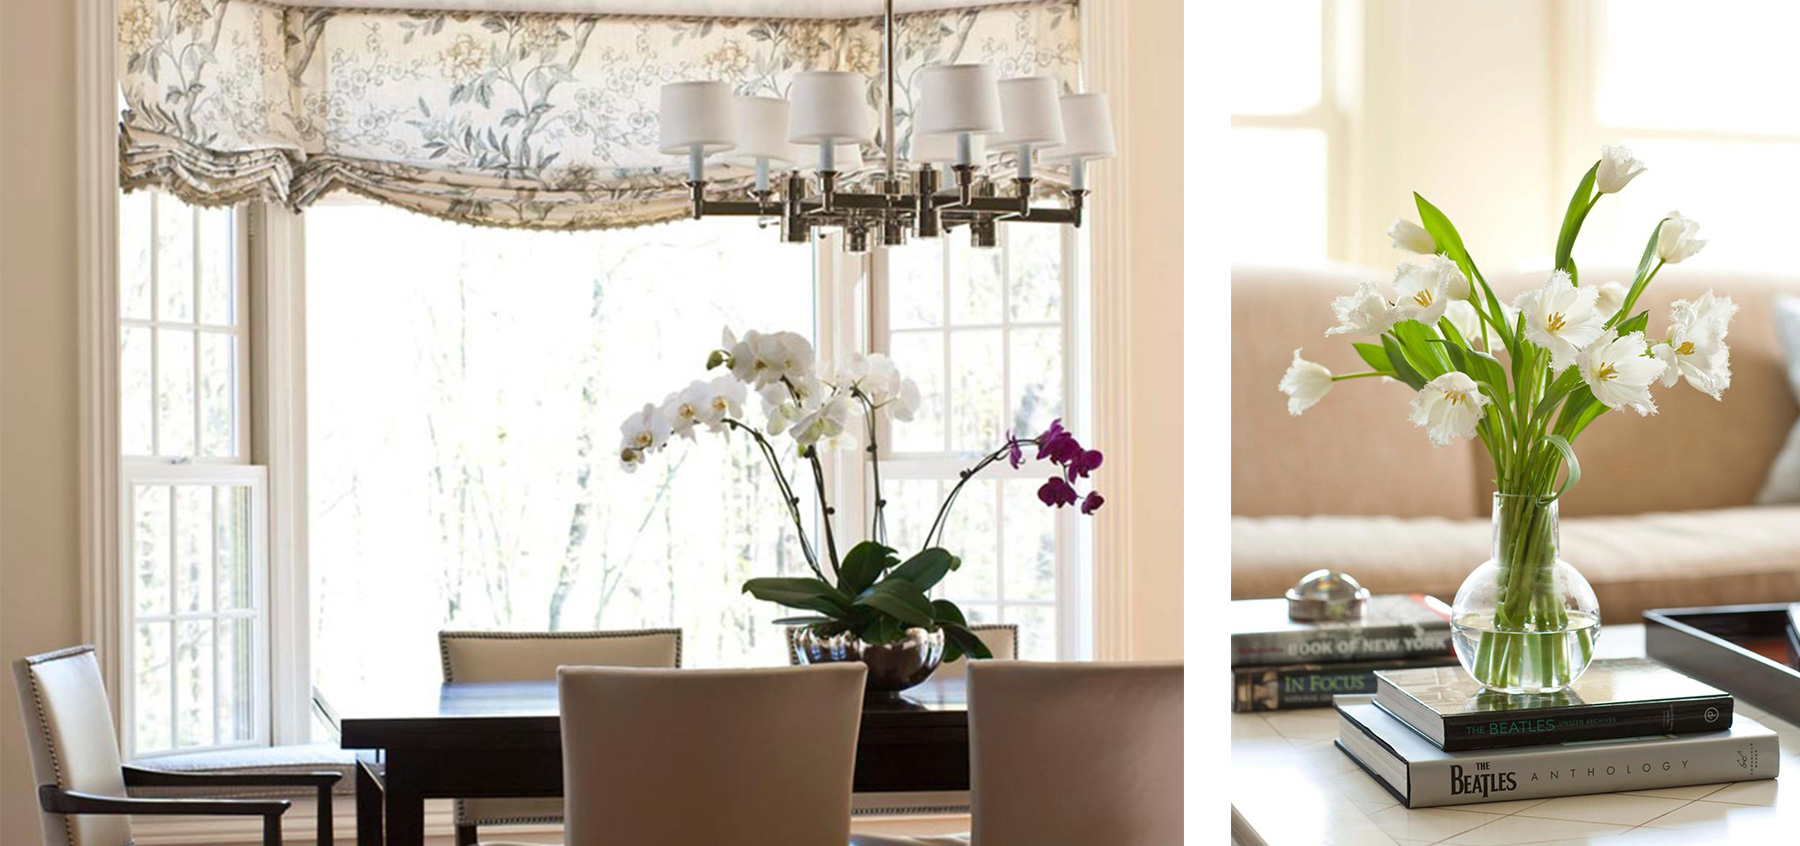 01 dining table chandelier coffee table flower books